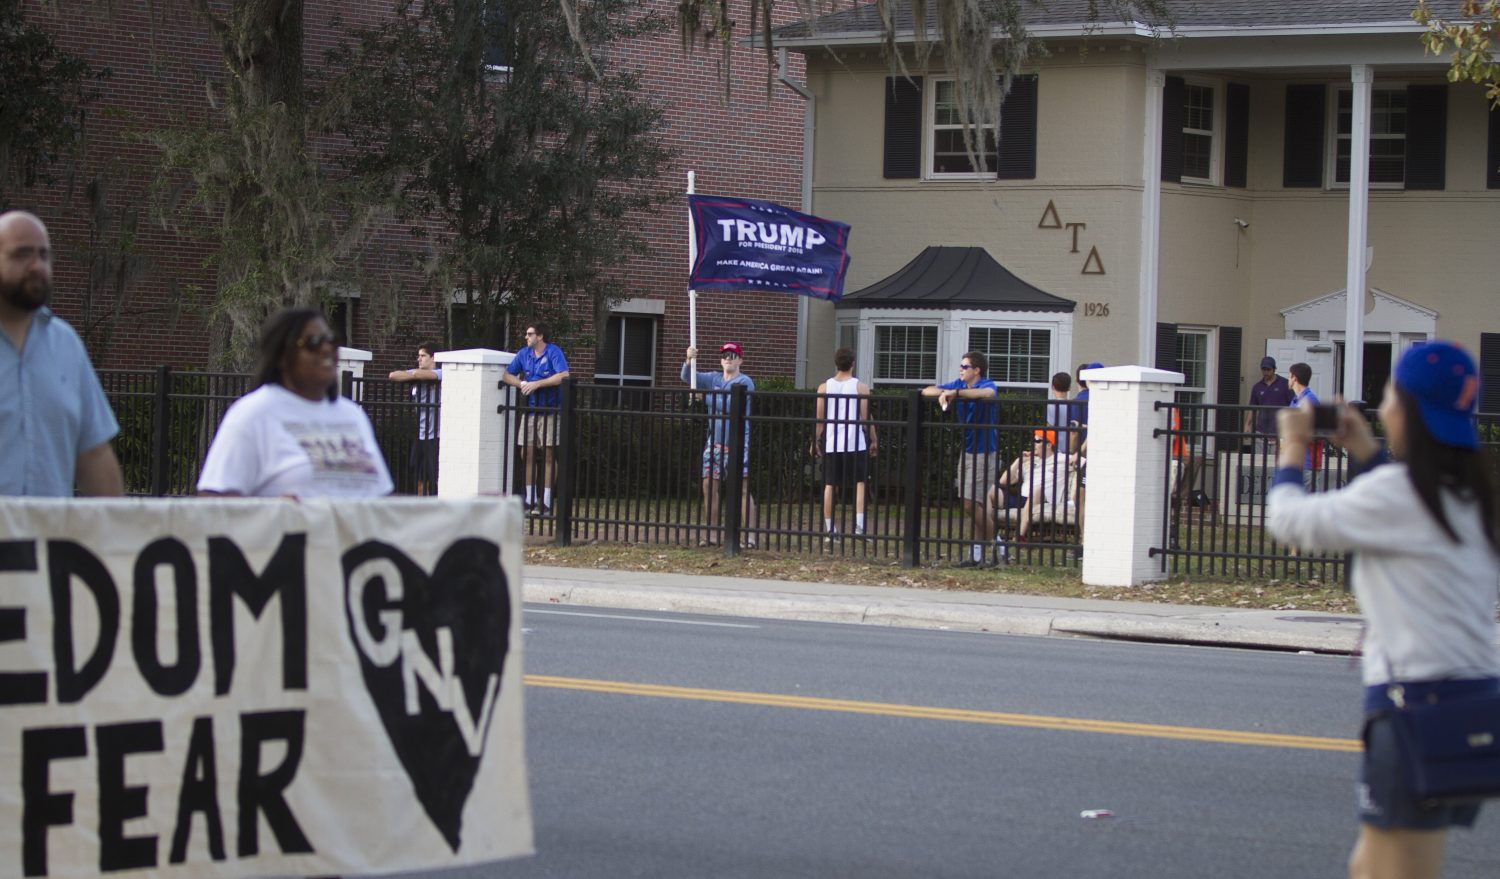 A man at the Delta Tau Delta house across from the University of Florida waves a Donald Trump flag as the protestors walk by. (Michael Stone/WUFT News)